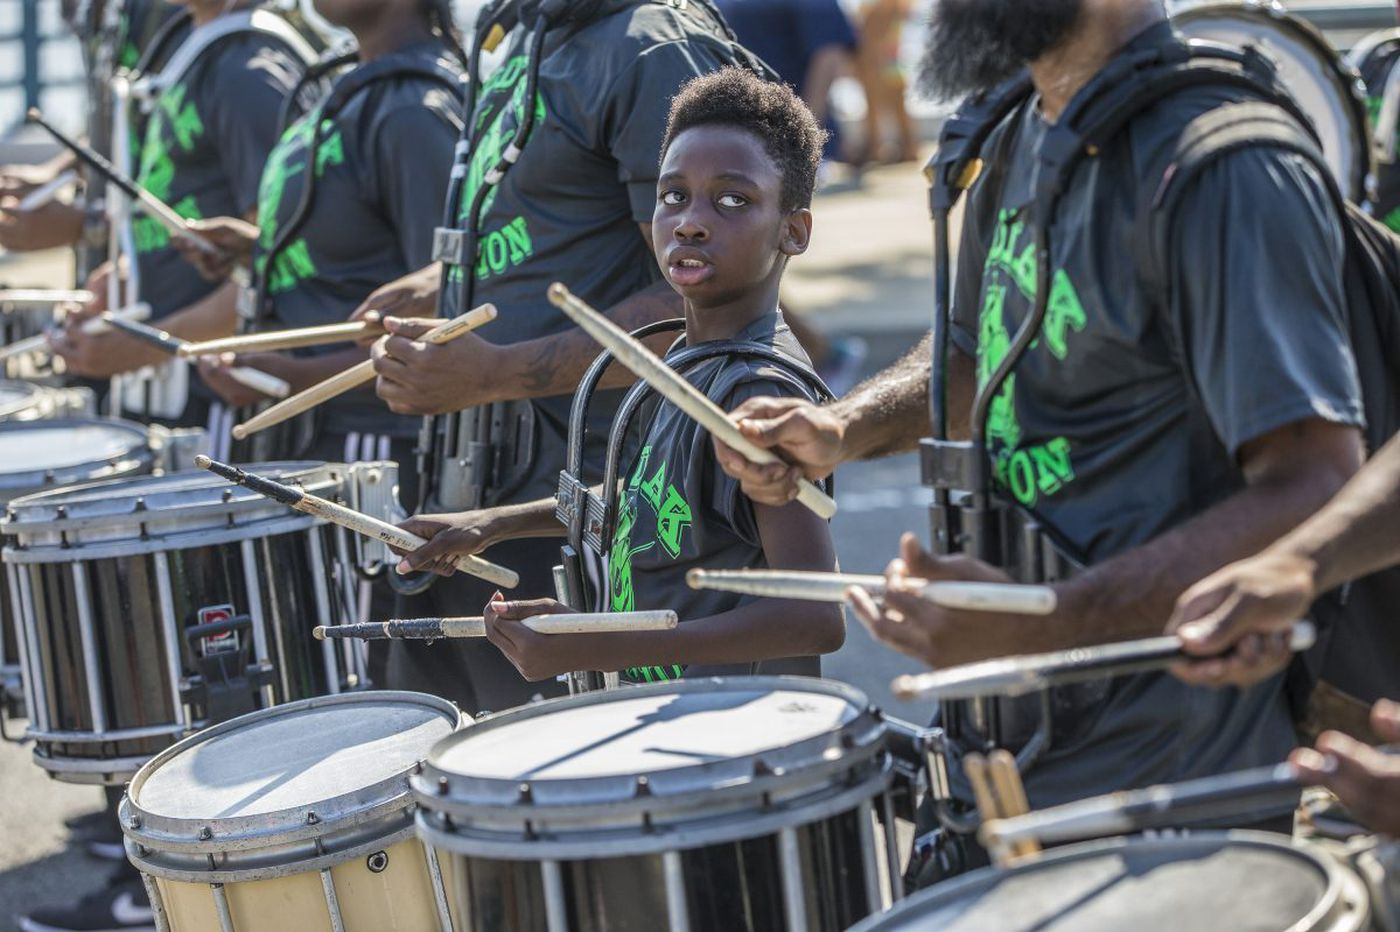 Philly drum lines: Show some respect - we're your history